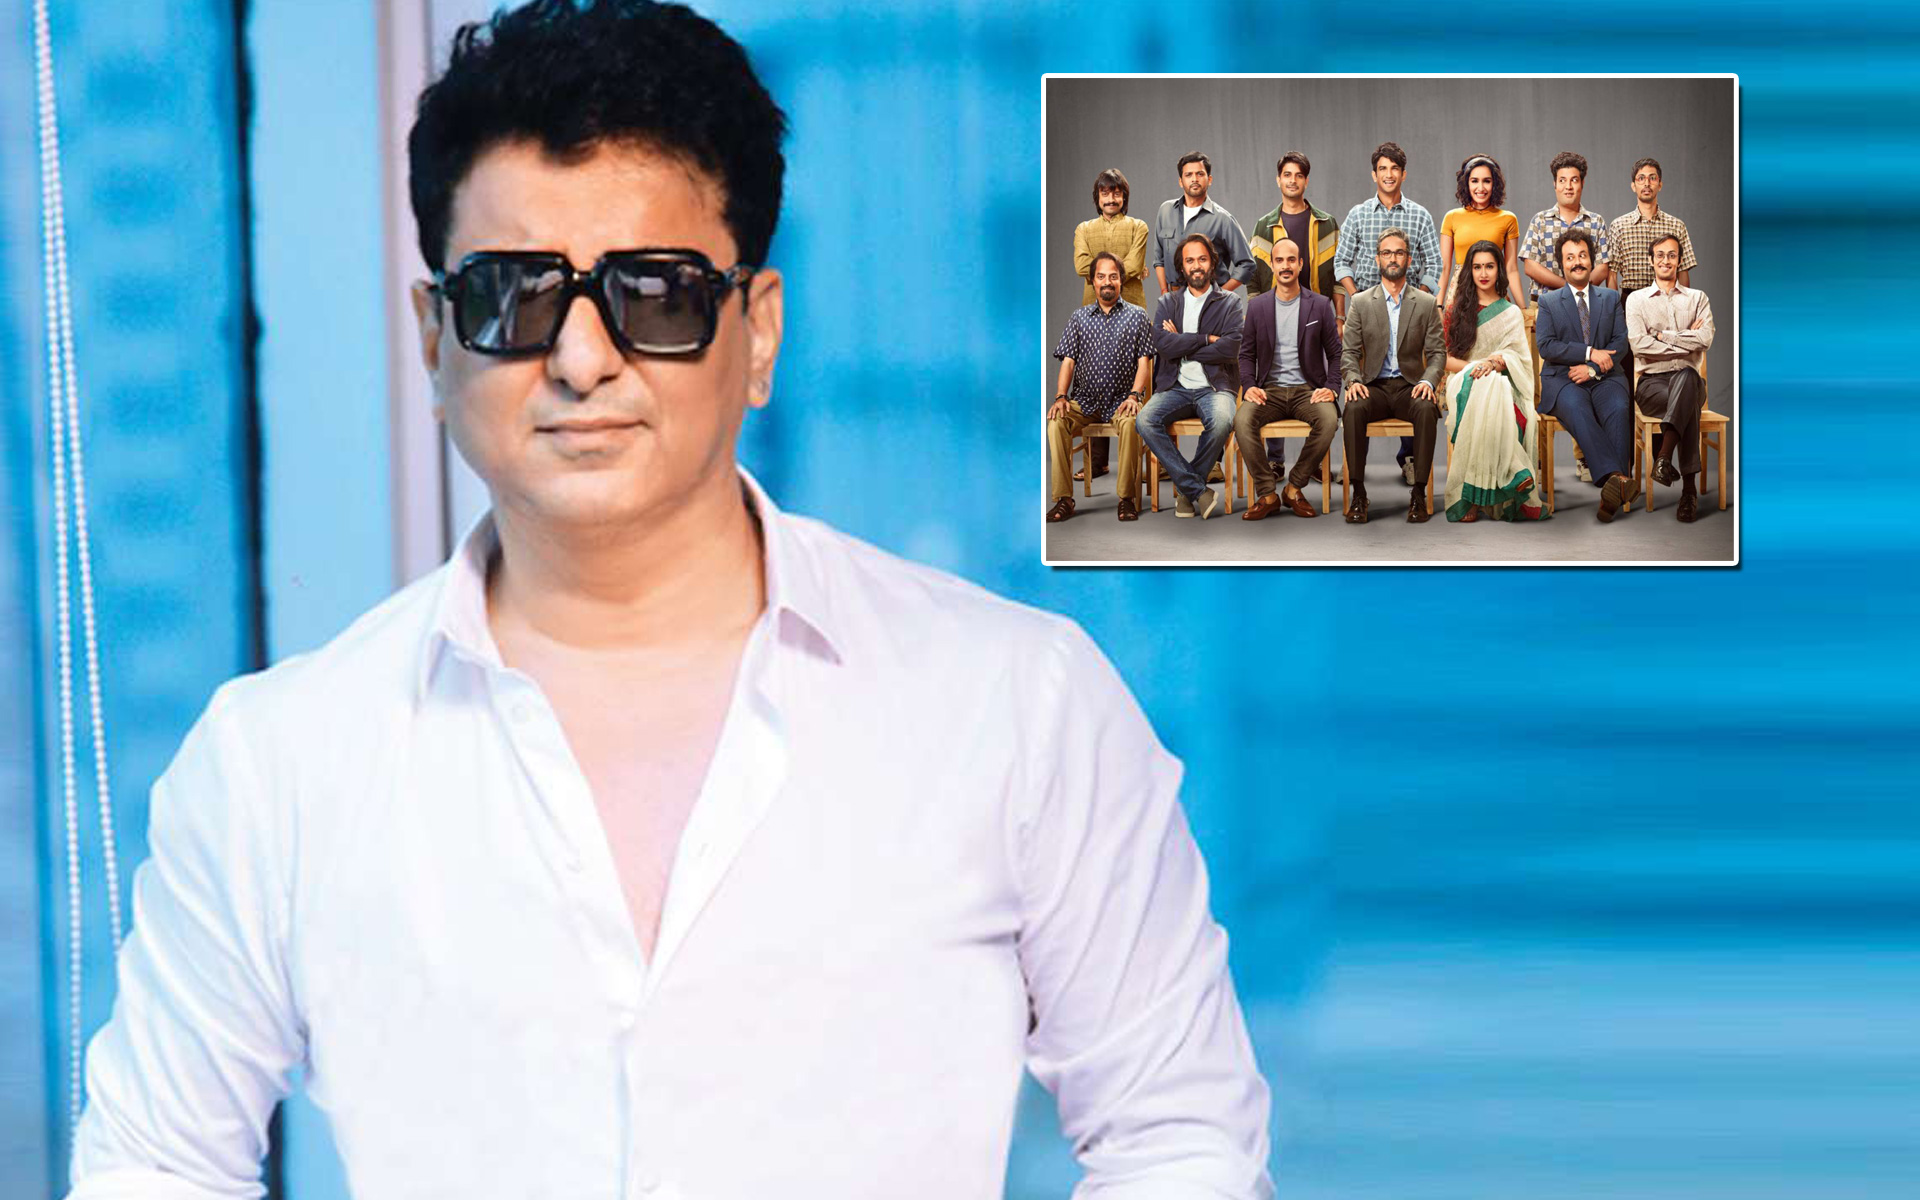 *Sajid Nadiadwala would want to make more films like Chhichhore!*